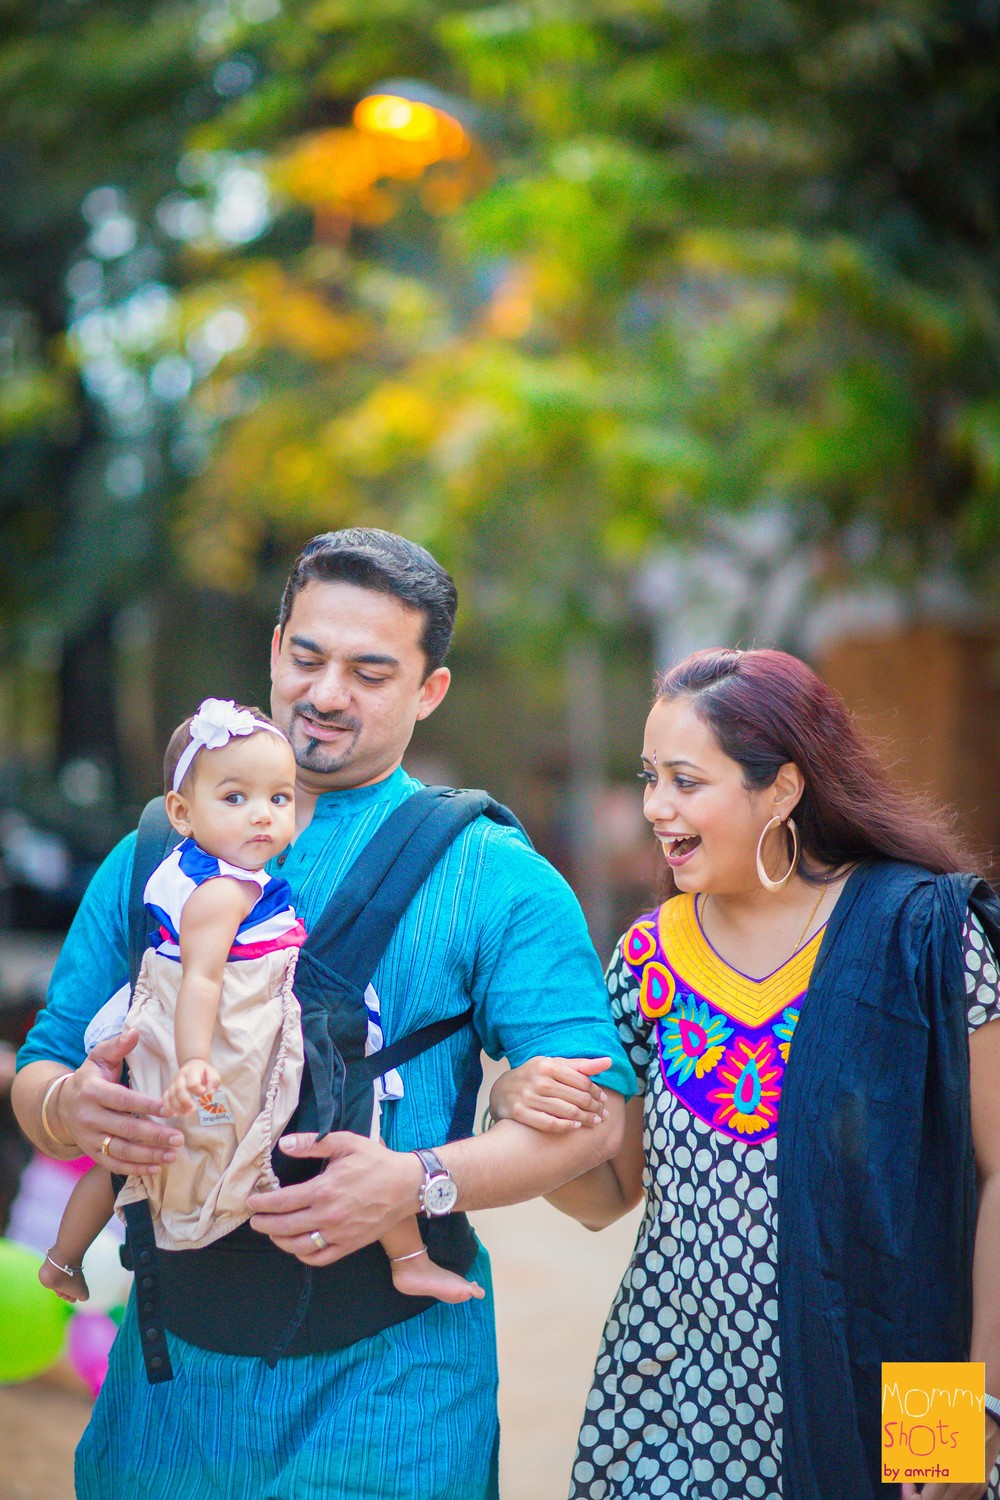 An architect mommy and a restaurateur daddy, Padmakshi spends equal amount of time with both parents through each day. Swetha and Pradeep balance their careers and lives with Padmakshi at the forefront, making each day and memory count.